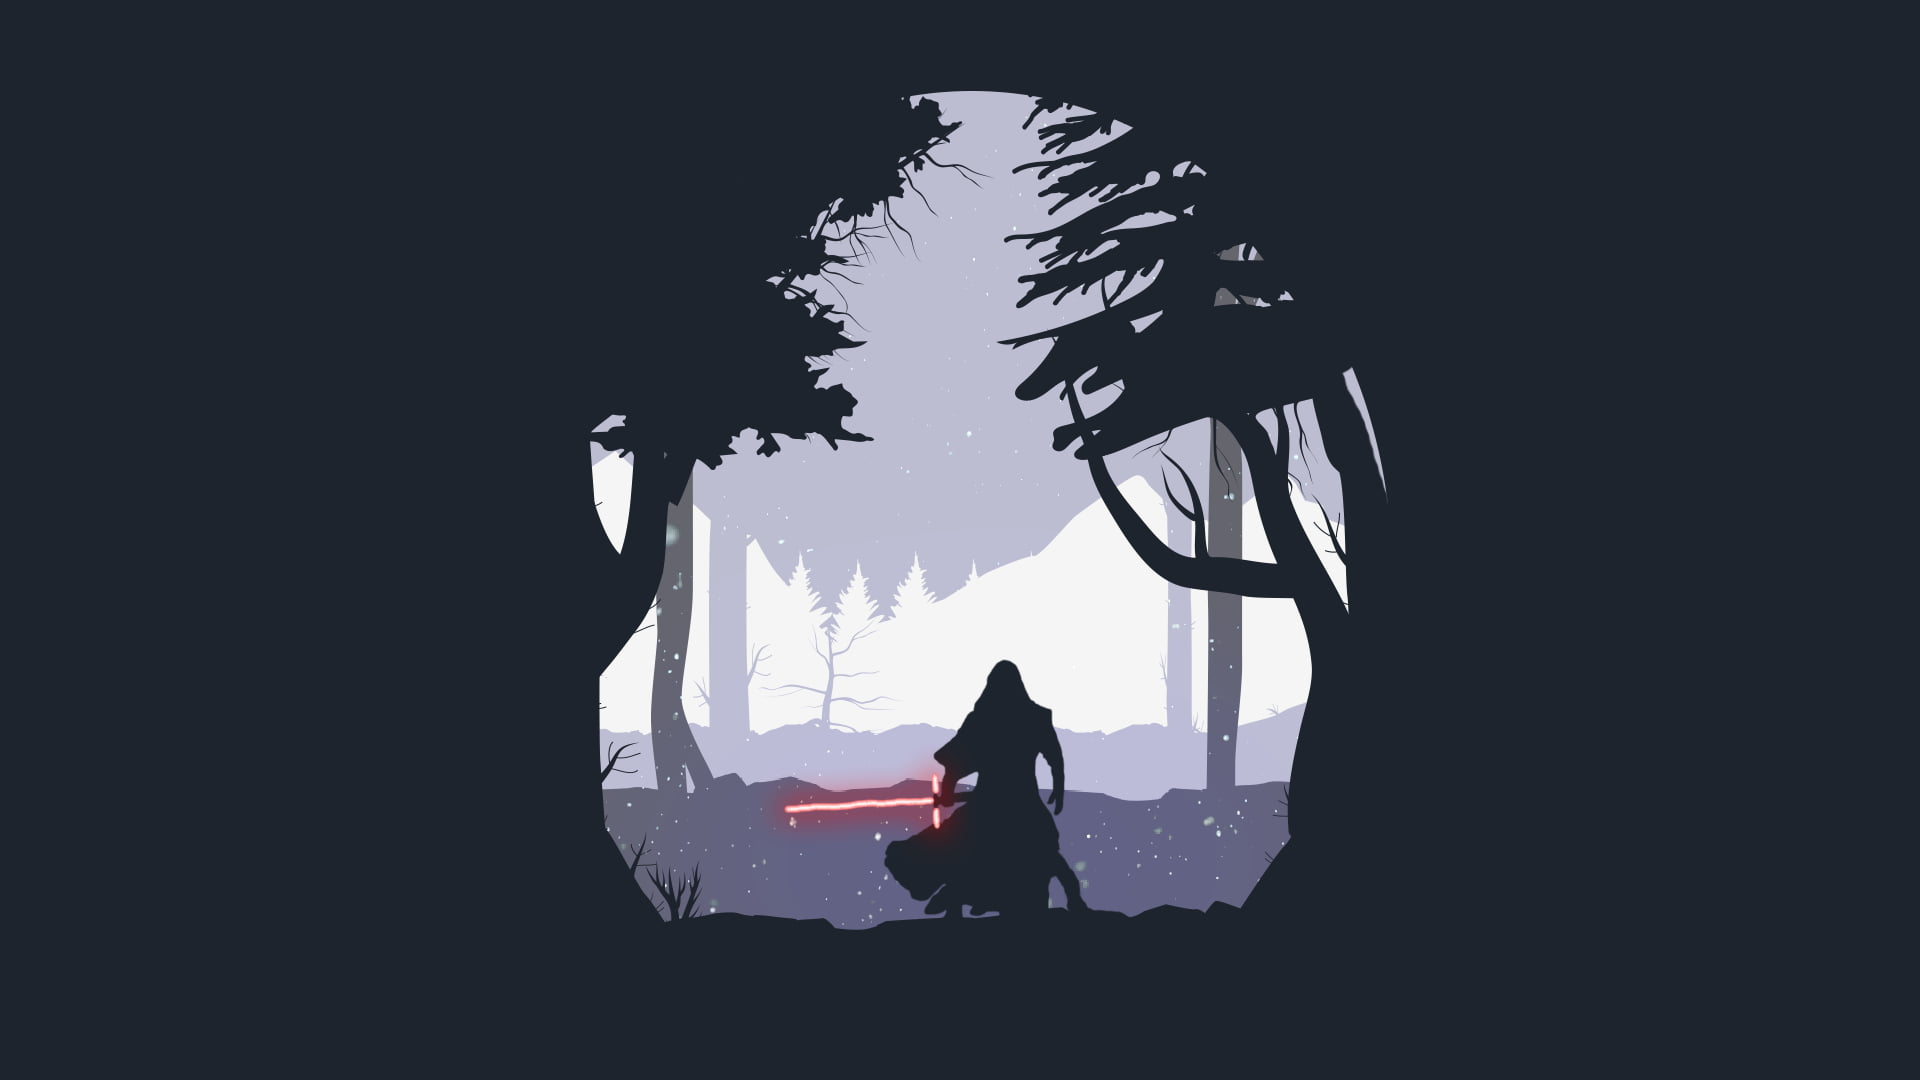 Animated Star Wars Wallpapers Top Free Animated Star Wars Backgrounds Wallpaperaccess